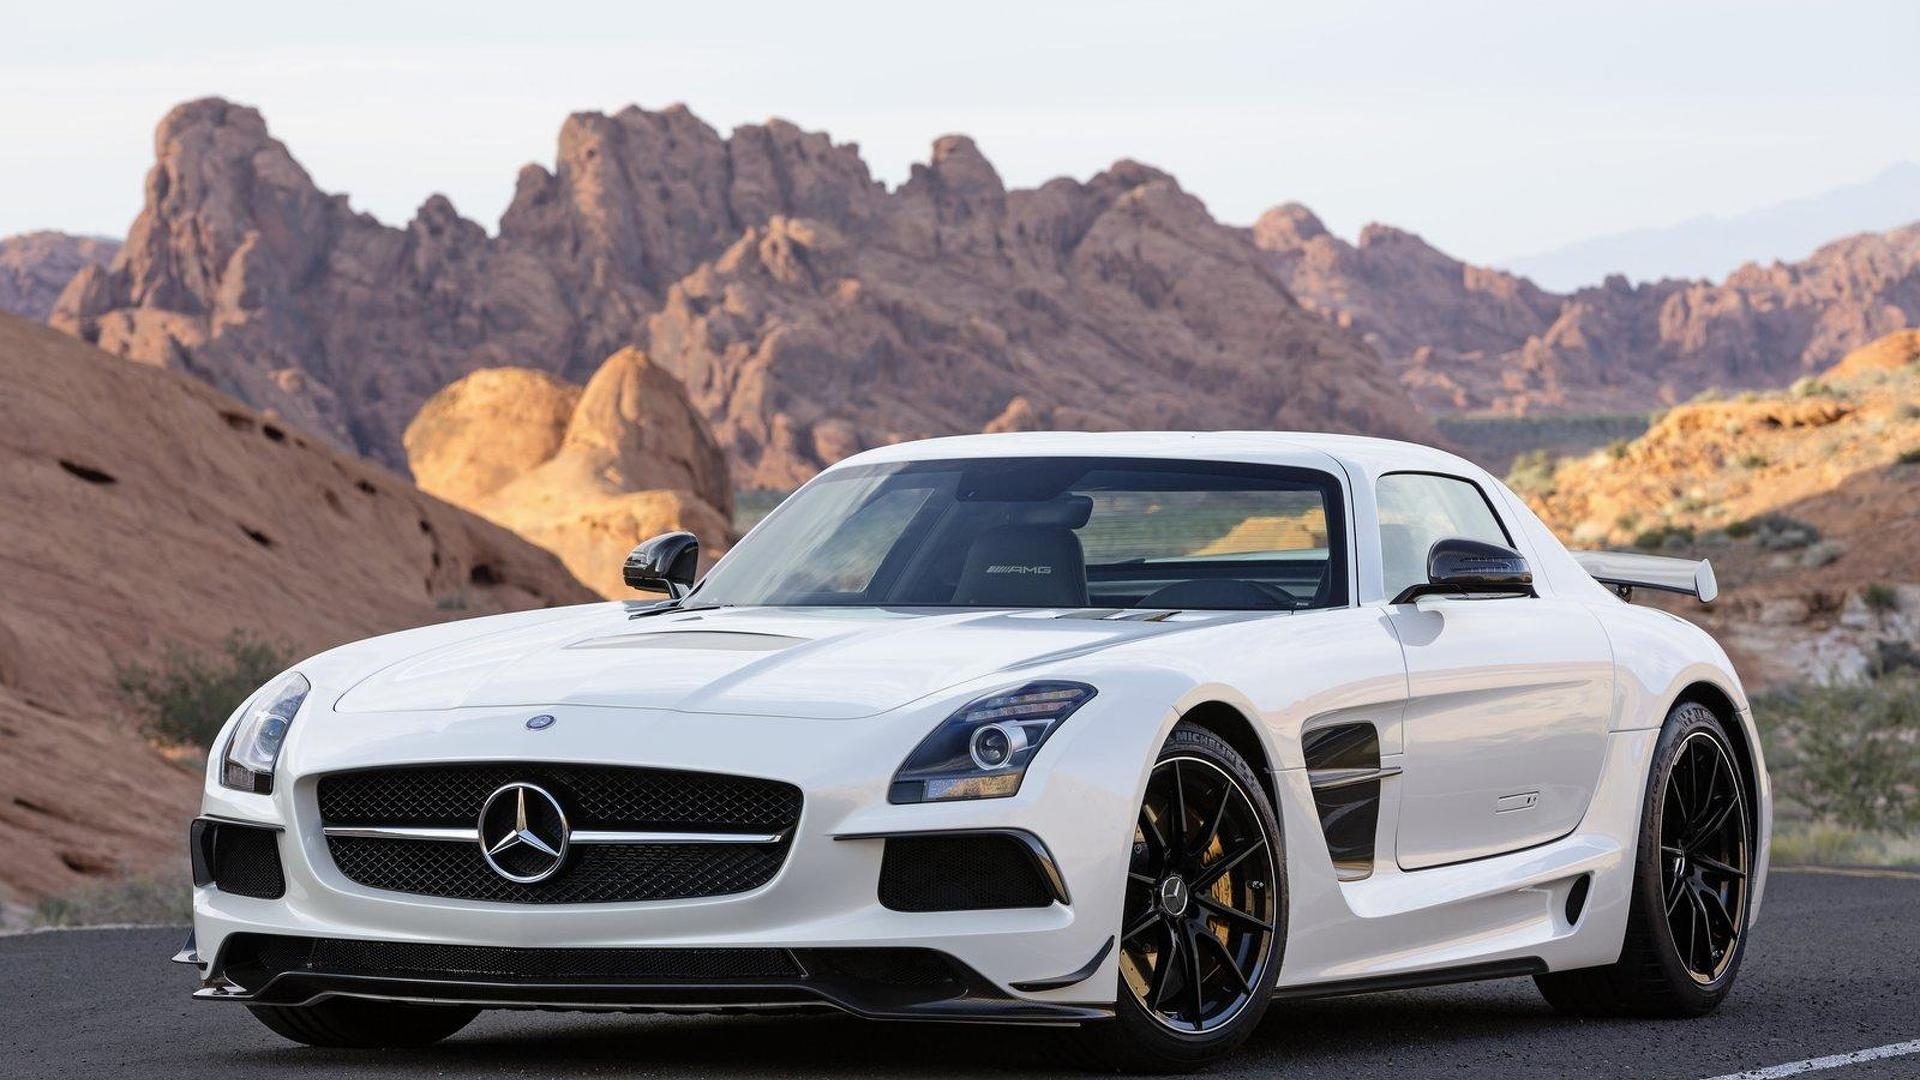 Mercedes Benz Sls Amg Black Series News And Reviews Motor1 Com